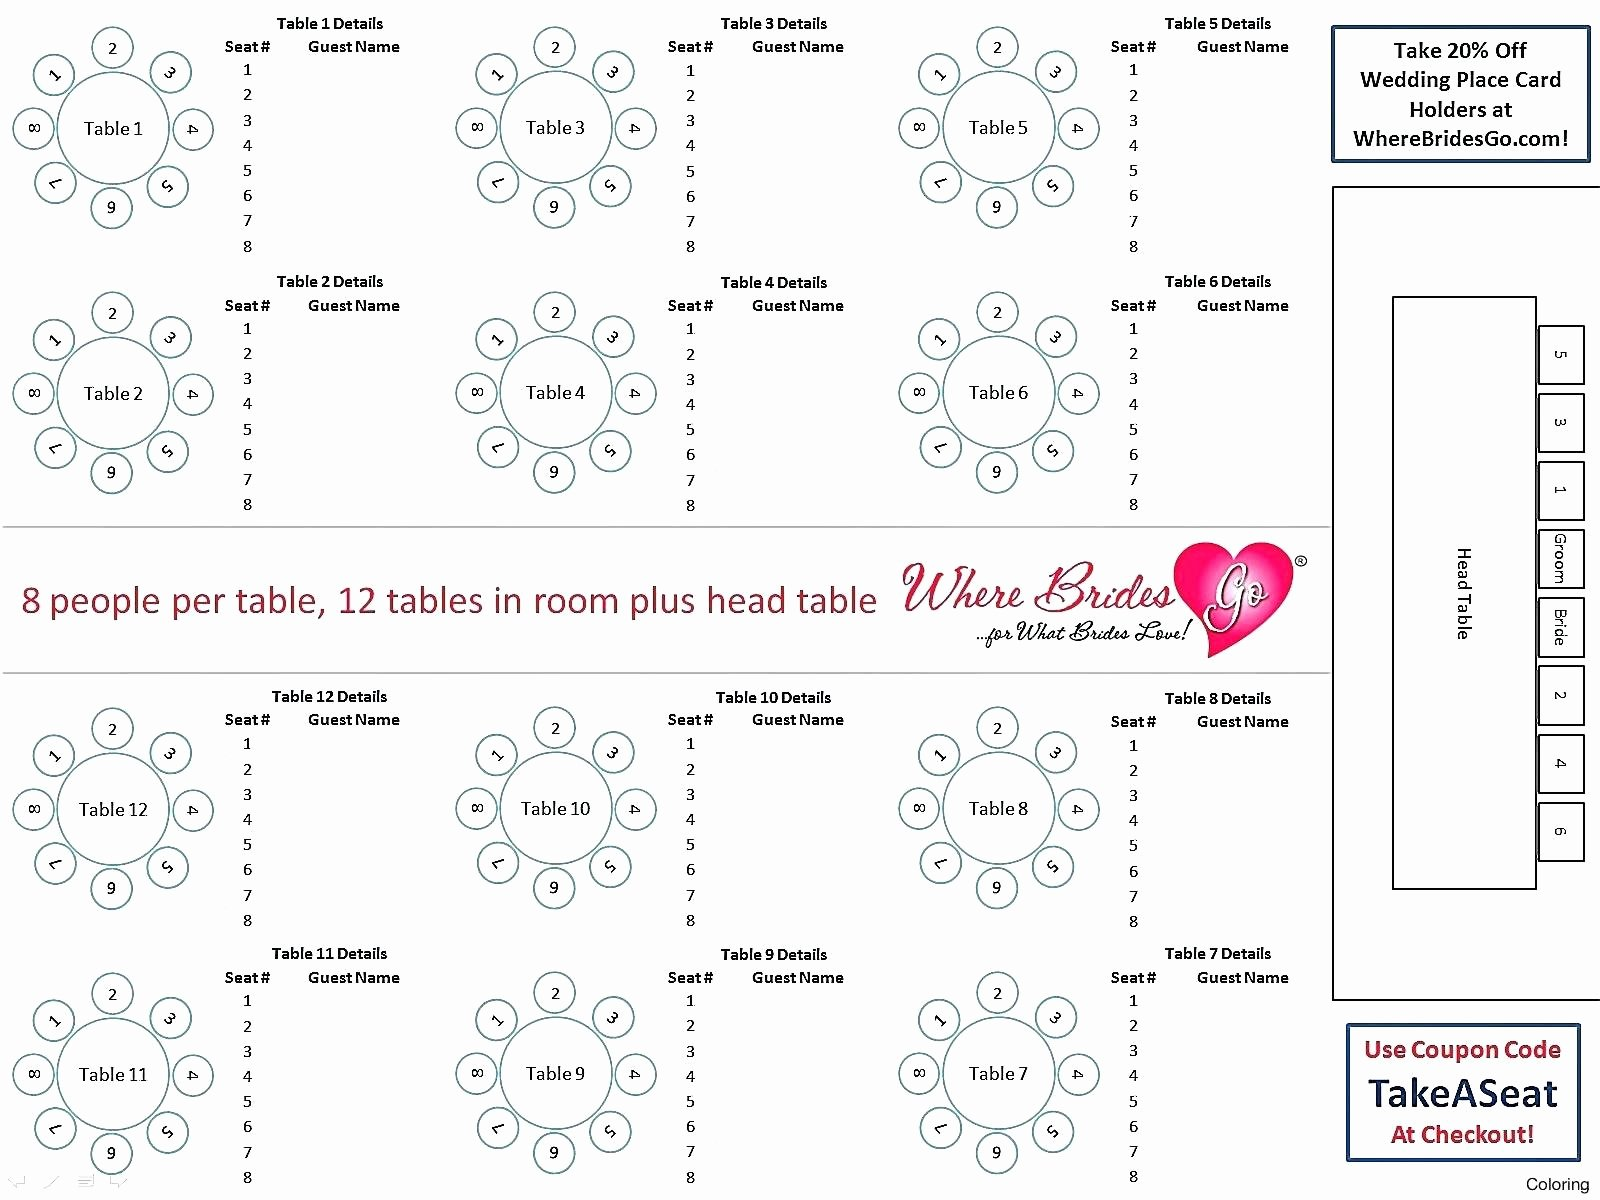 Restaurant Seating Chart Template Excel Best Of Restaurant Seating Chart Template